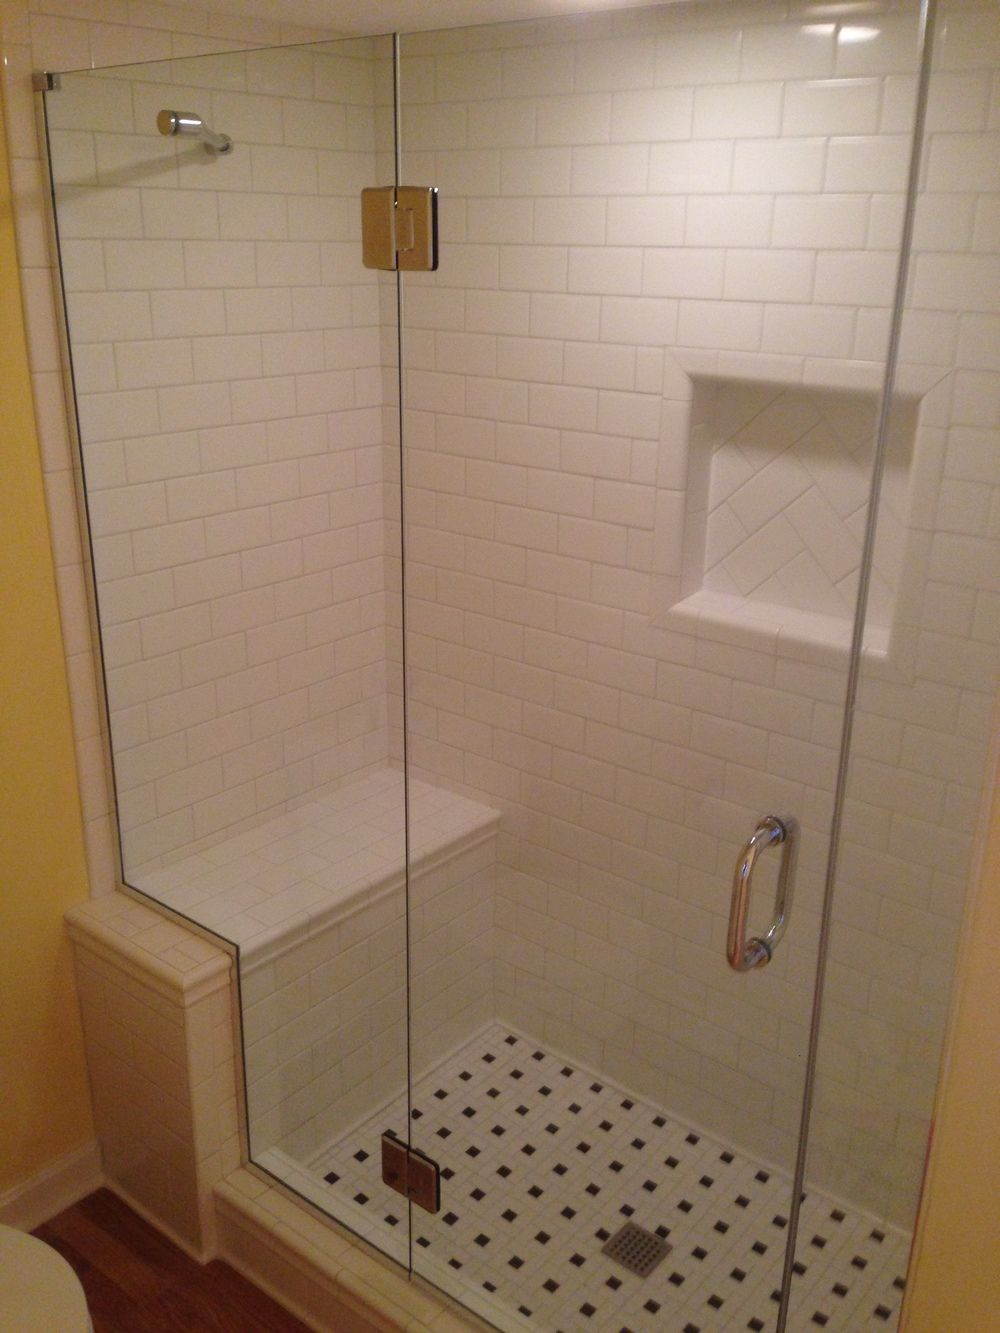 How to build a tiled shower tub - Converting Tub To Walk In Shower